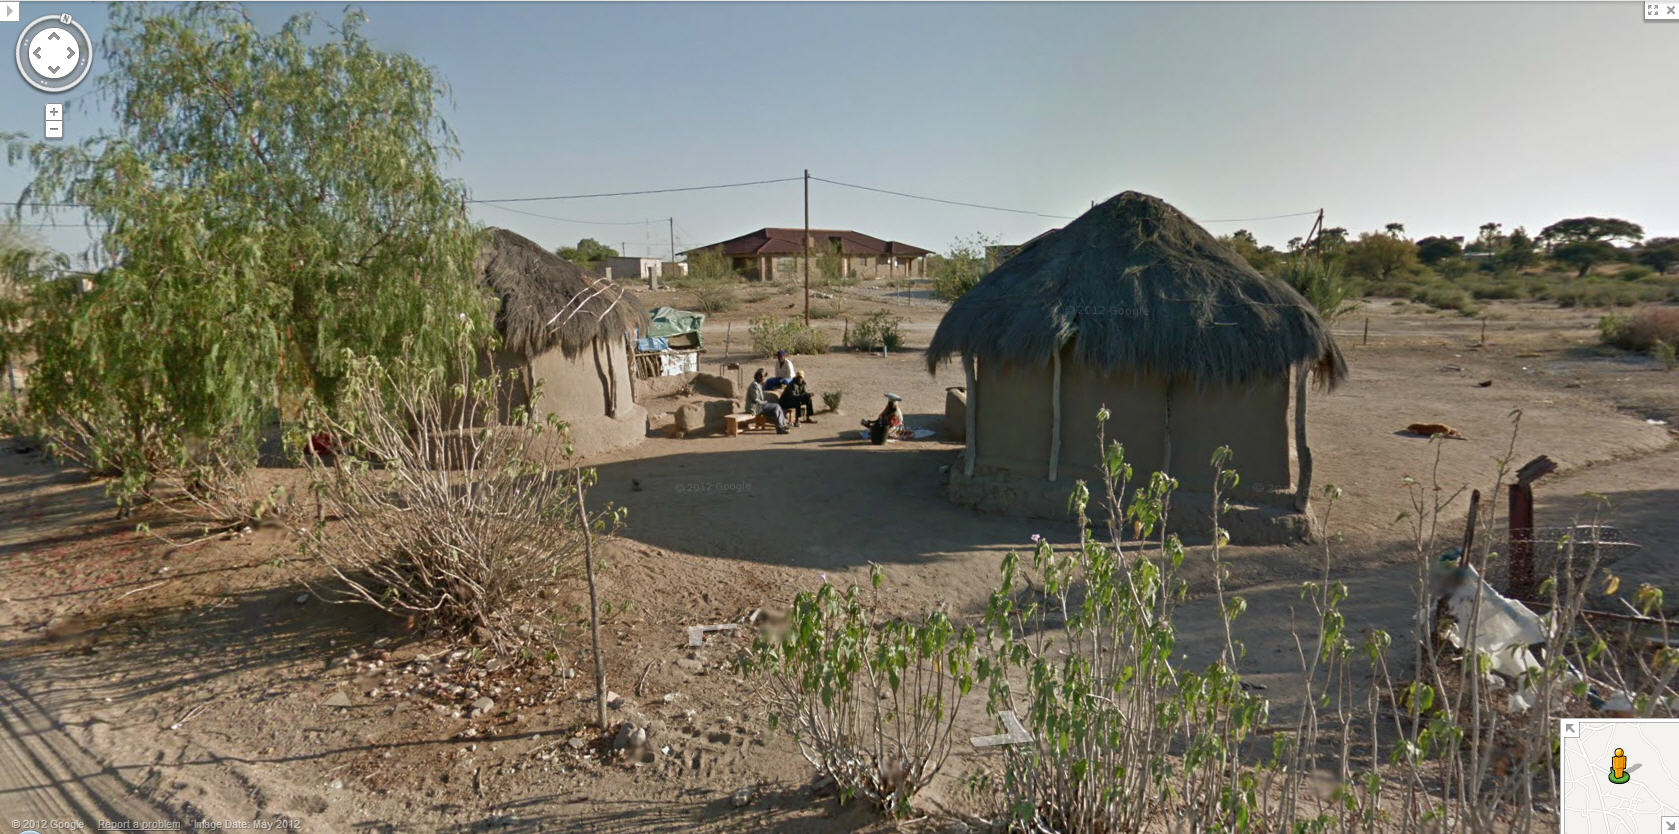 google-street-view-botswana-now-live-including-national-parks